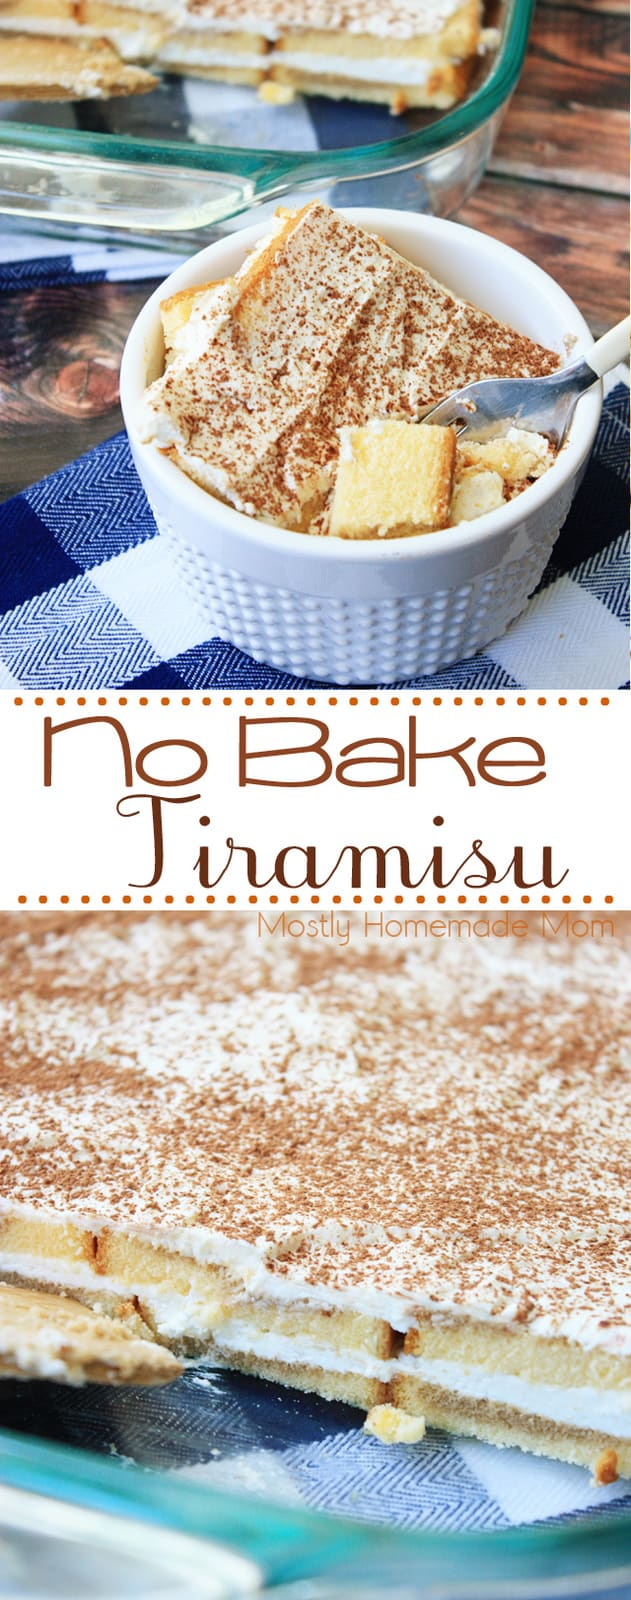 This Easy Tiramisu Recipe is ready in minutes! Pound cake slices drizzled with coffee and topped with a sweet cream cheese - a delicious no bake dessert! #nobakedessert #recipe #tiramisu #coffee